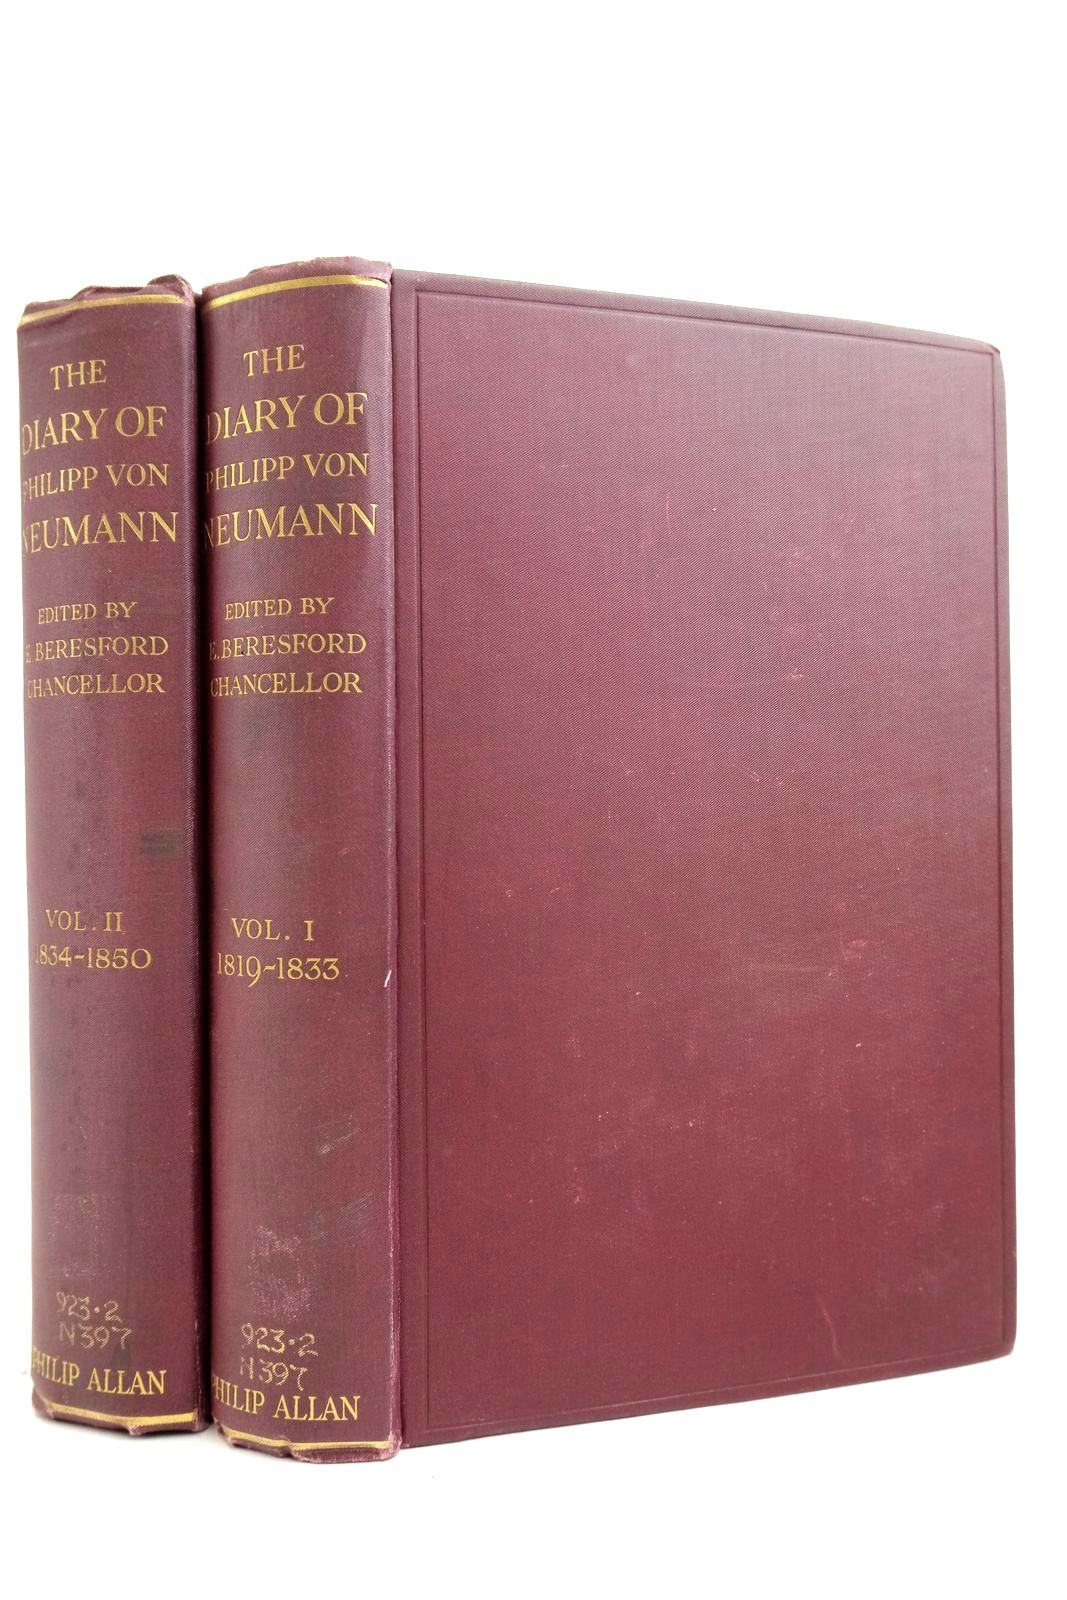 Photo of THE DIARY OF PHILIPP VON NEUMANN 1819 TO 1850 (2 VOLUMES)- Stock Number: 2134954